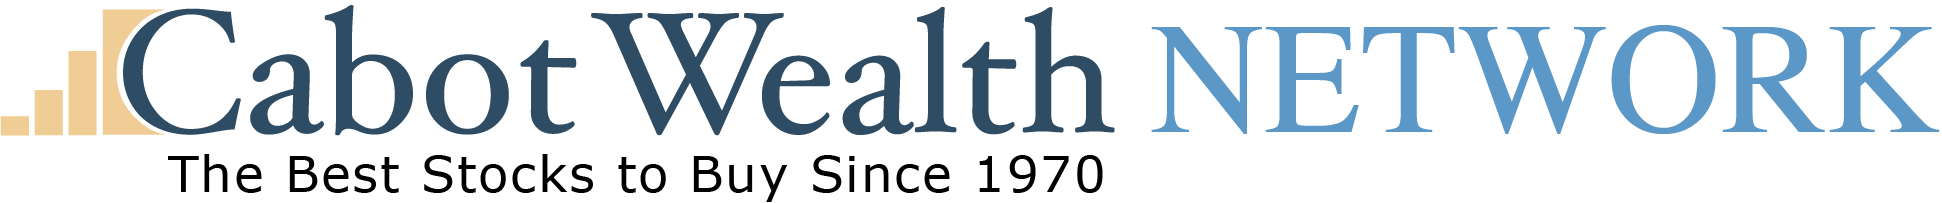 Cabot Wealth Network Logo